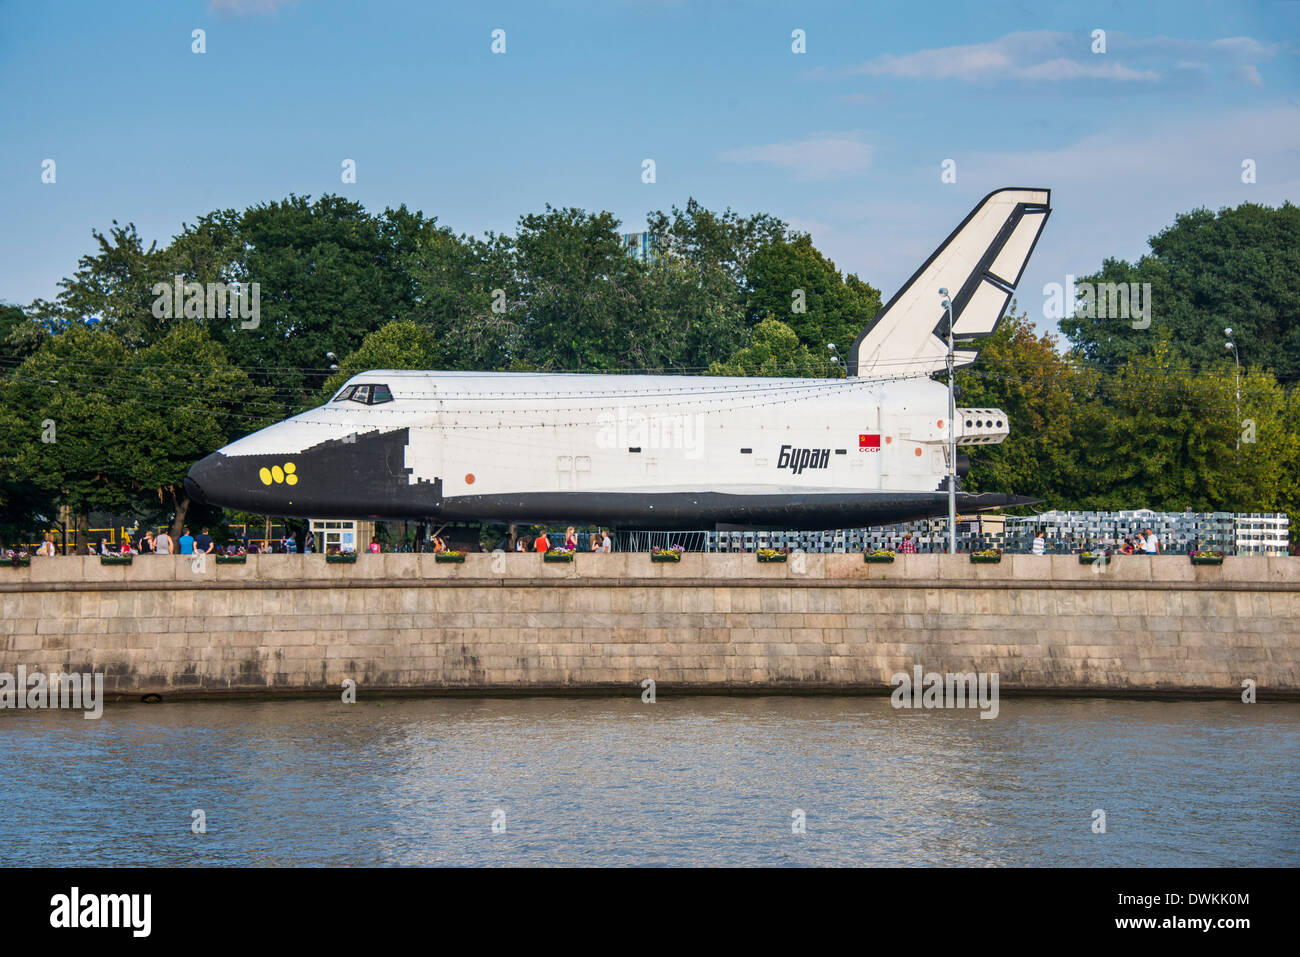 Buran space shuttle test vehicle in the Gorky Park on the Moscow River, Moscow, Russia, Europe - Stock Image